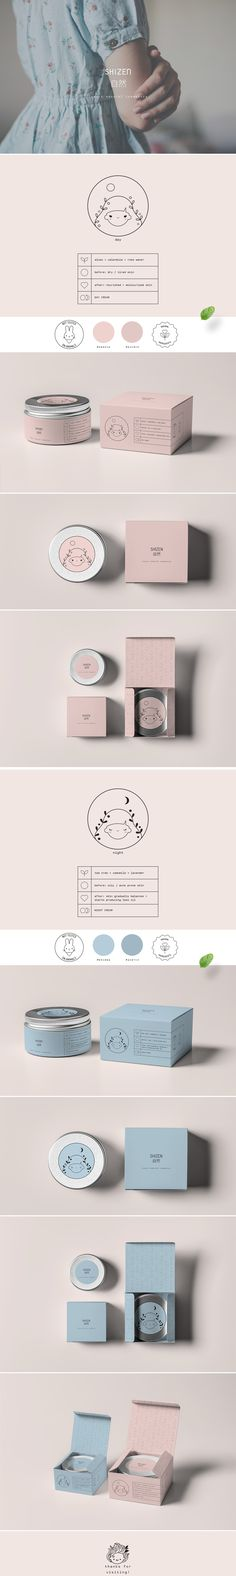 """SHIZEN - luxury natural cosmetic brand inspired by the Japanese word """"shizen"""" means nature. Brand logo represents mother nature in day and night. Recipe of cosmetics is based on natural components like herbs, flowers and fruits extracts. SHIZEN cares abou…"""